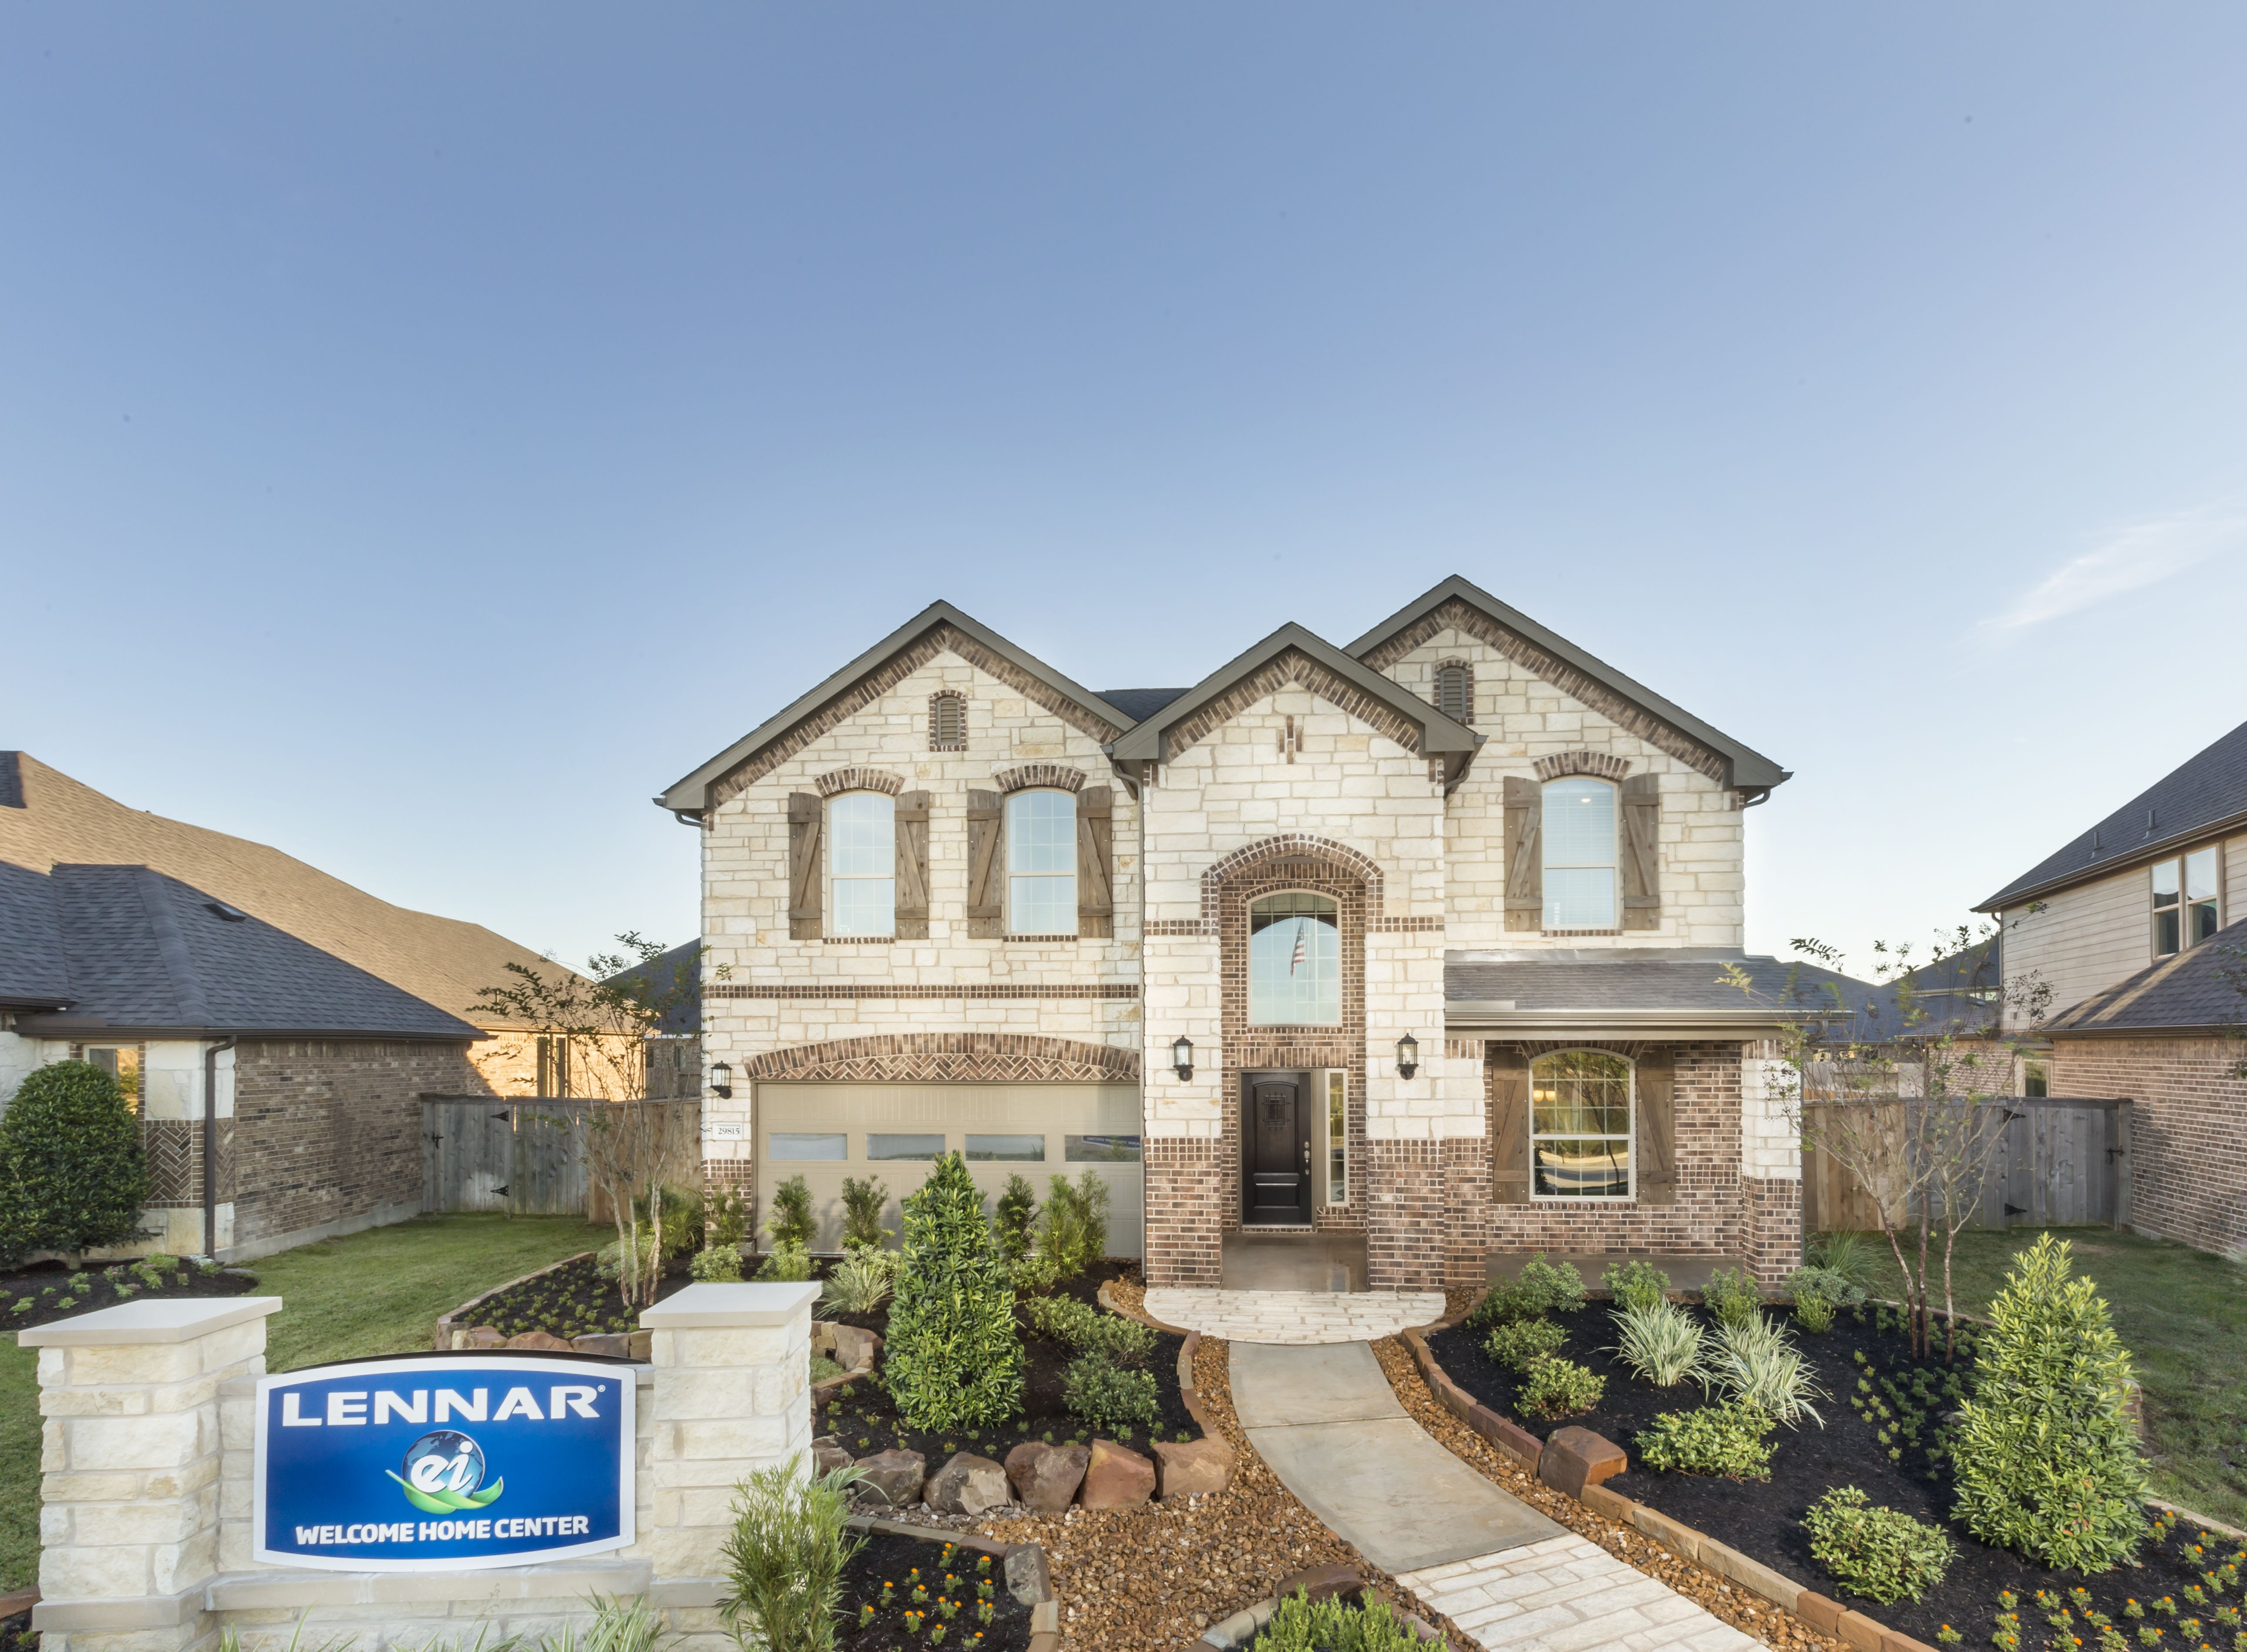 Traditional Exterior Stone Brick Design Model Home In Young Ranch Katy Tx New Home Communities Traditional Exterior Model Homes